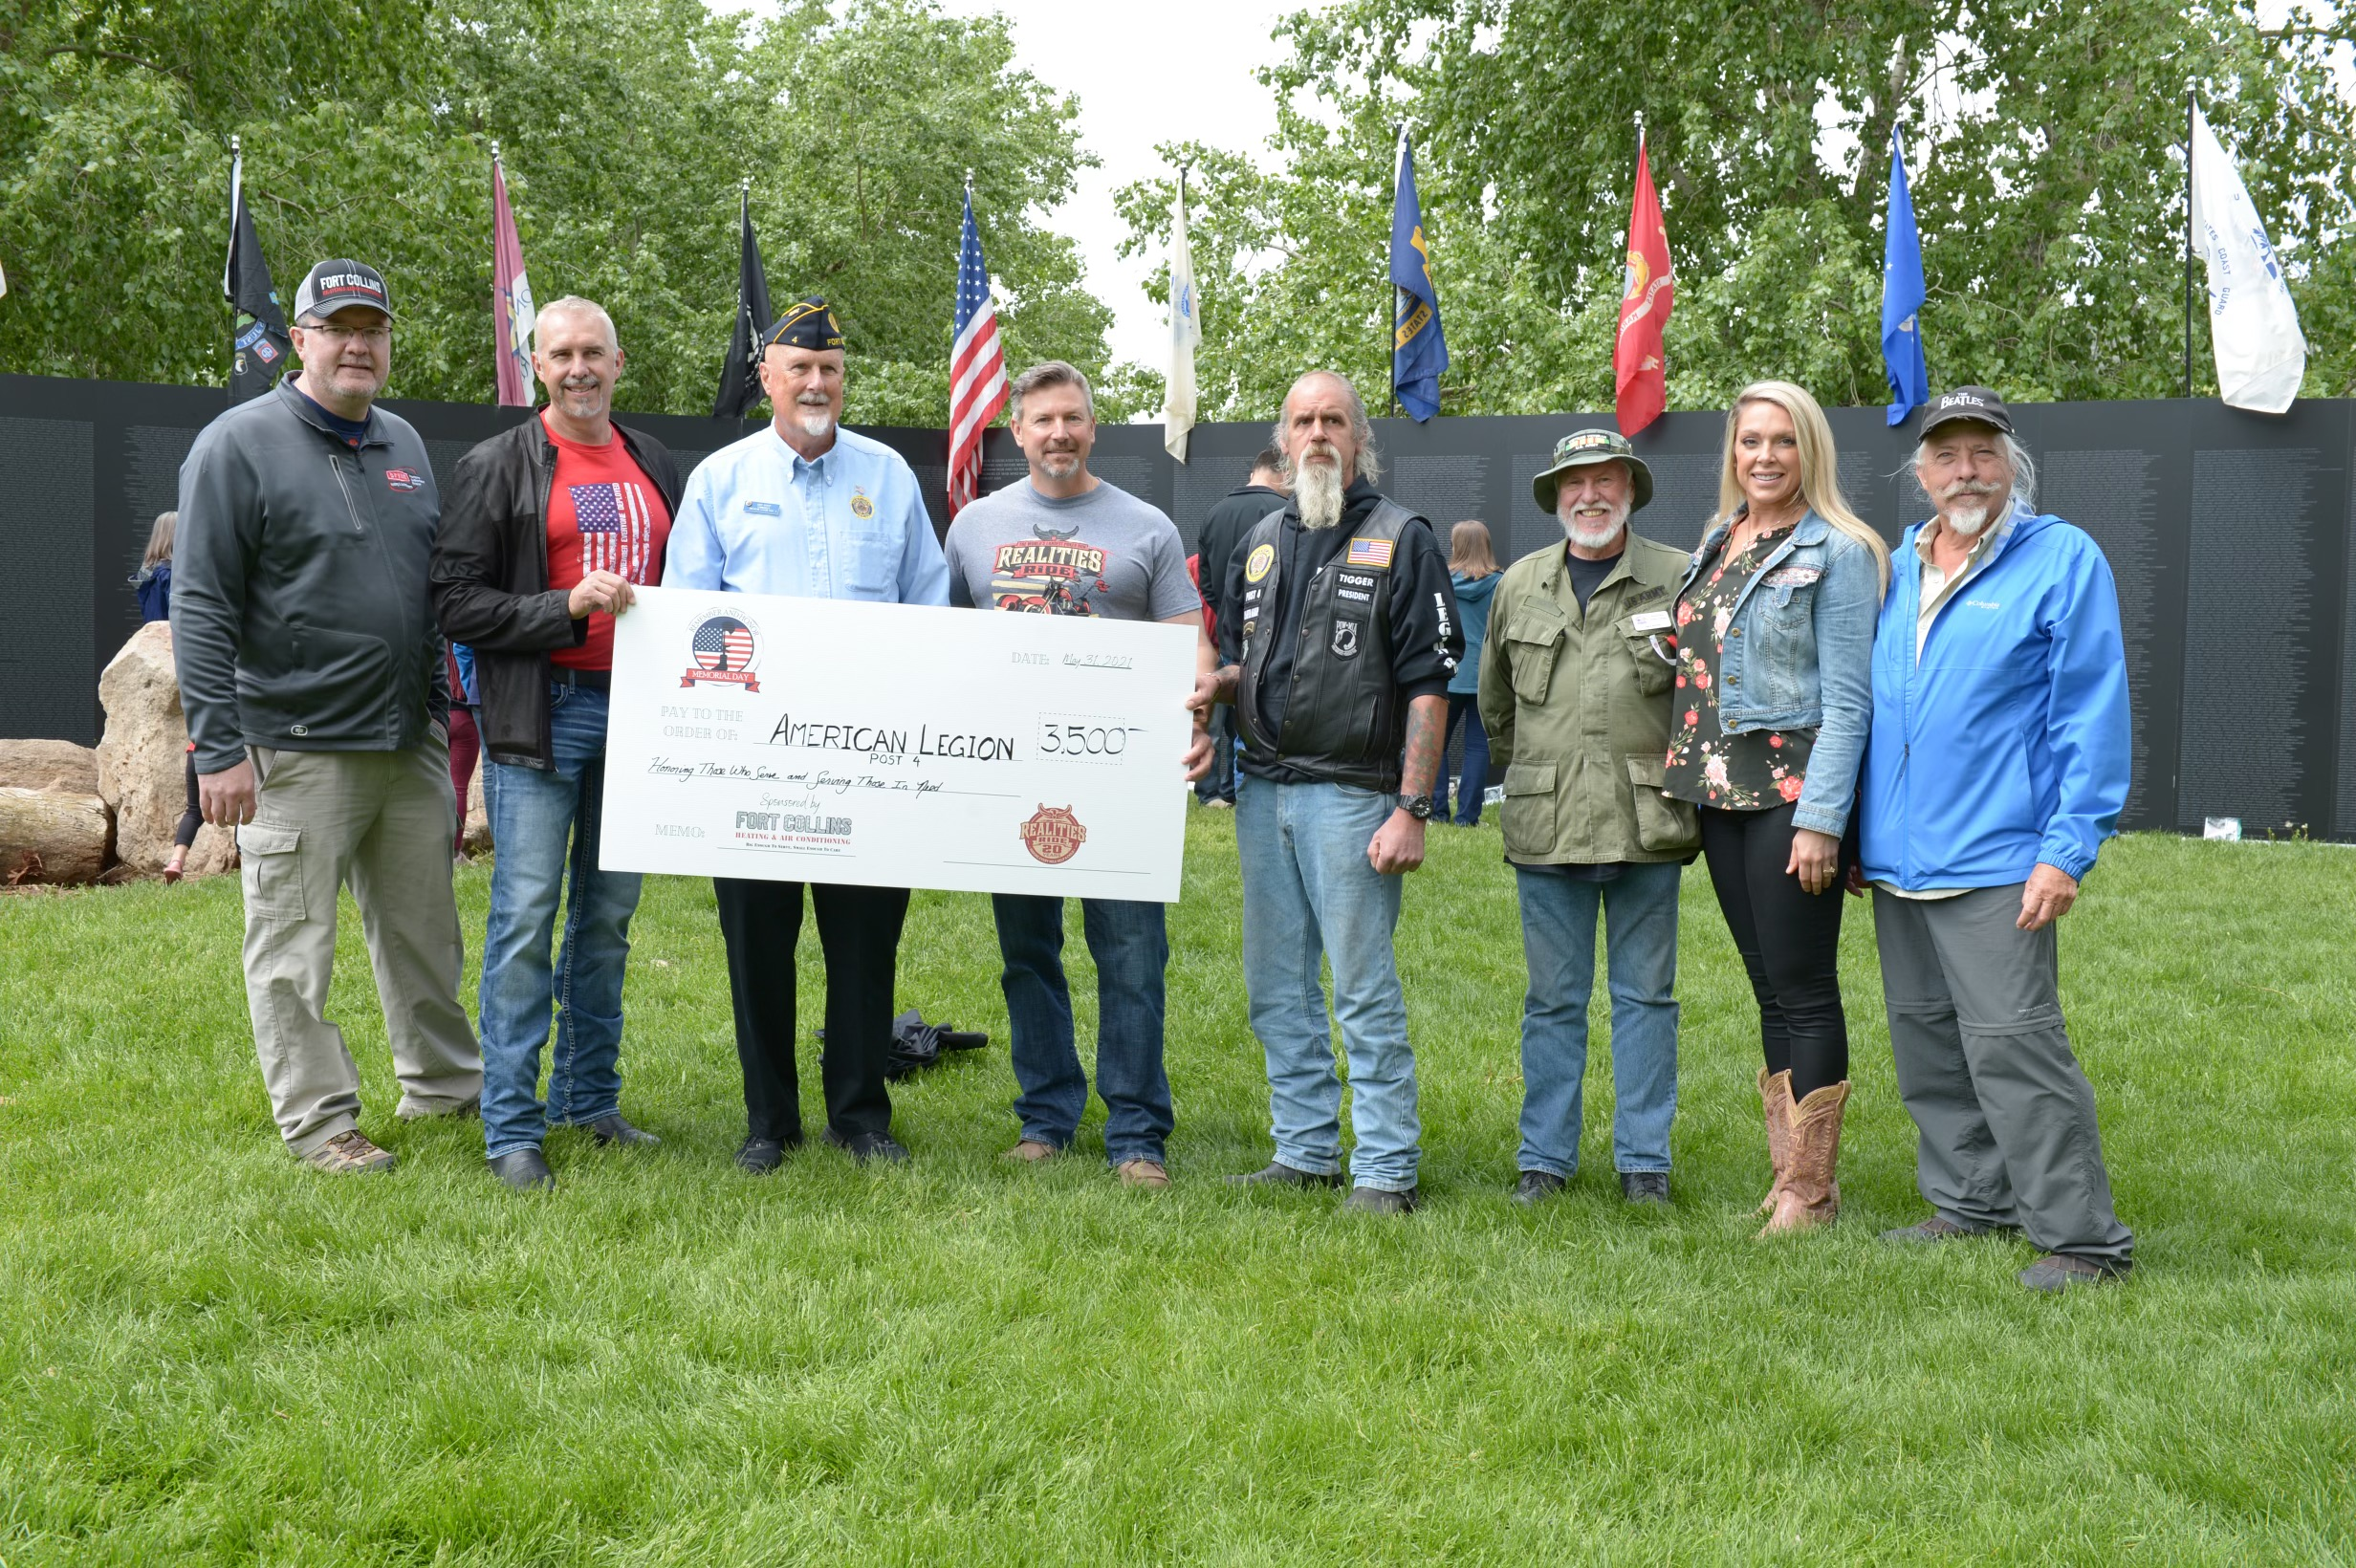 Fort Collins Heating & Air match donation to our local Veterans organizations